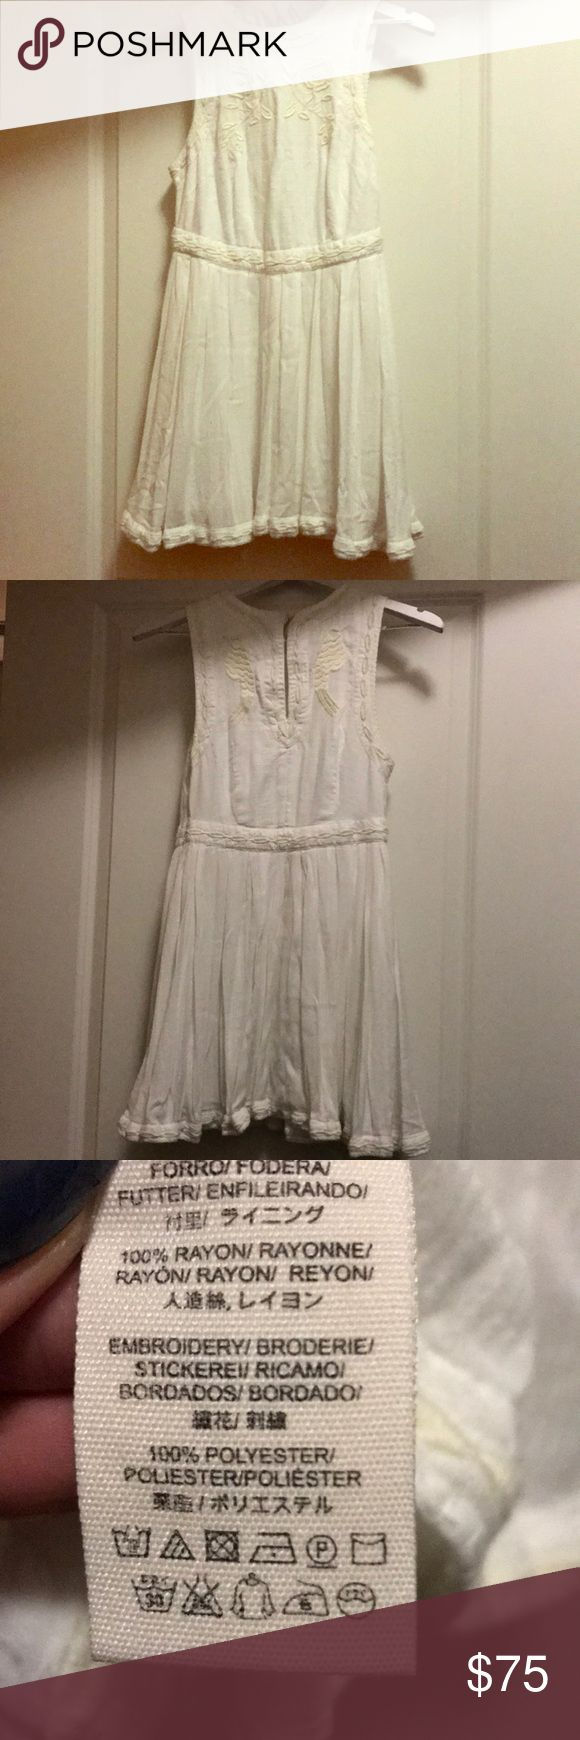 Free People White Dress Used. Great condition, no stains! Just needs ironed or steamed to remove wrinkles. Size 2. Comes from pet and smoke free environment. Free People Dresses Mini